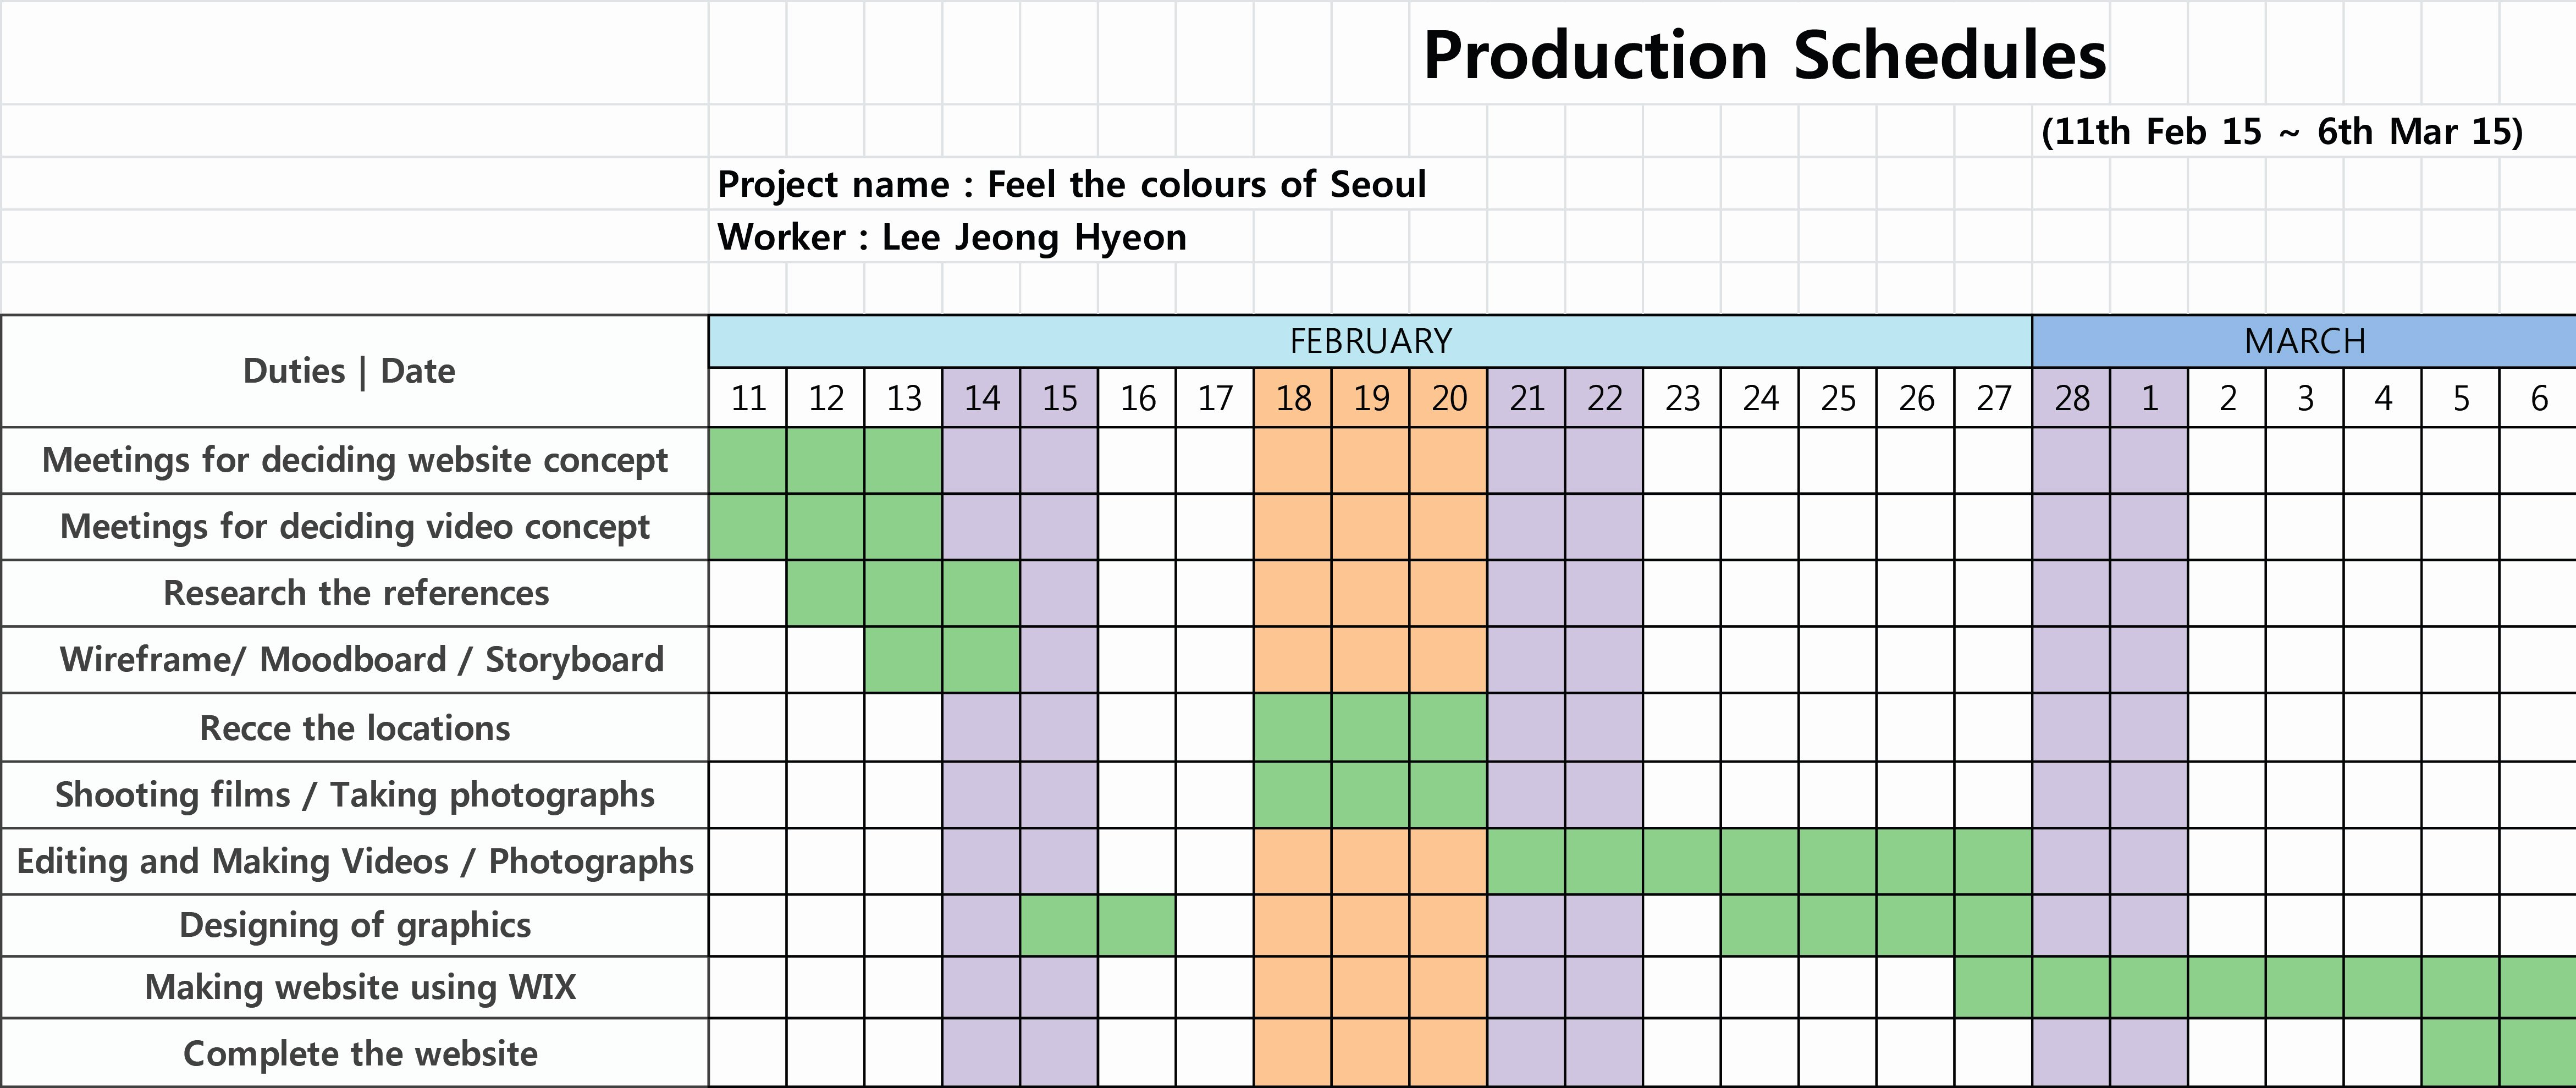 Video Production Schedule Template Elegant 2 3 Production Schedules – 2015mirimstudent36